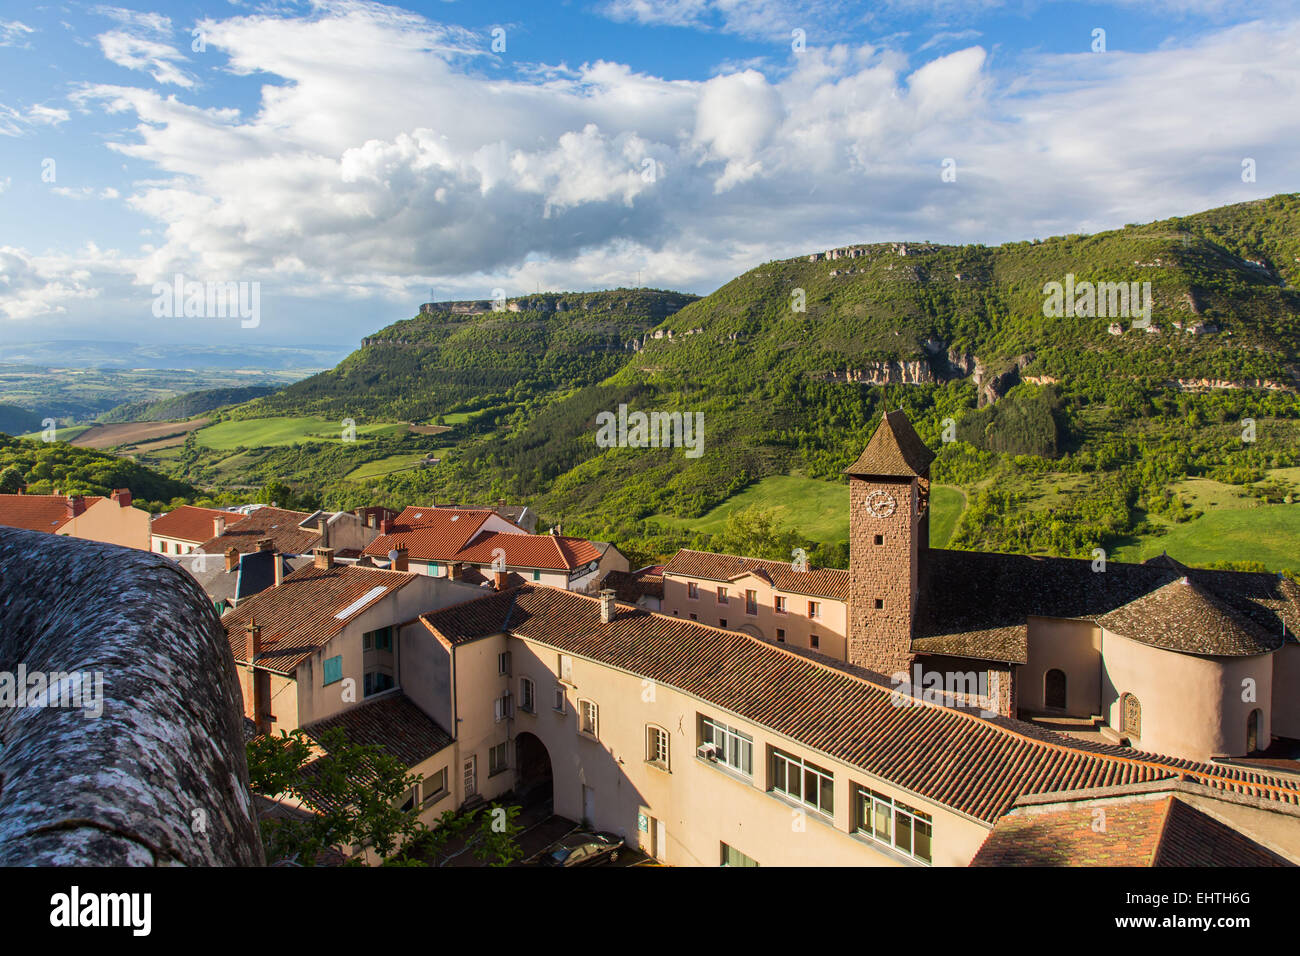 The Village Of Roquefort Sur Soulzon Stock Photos & The ...